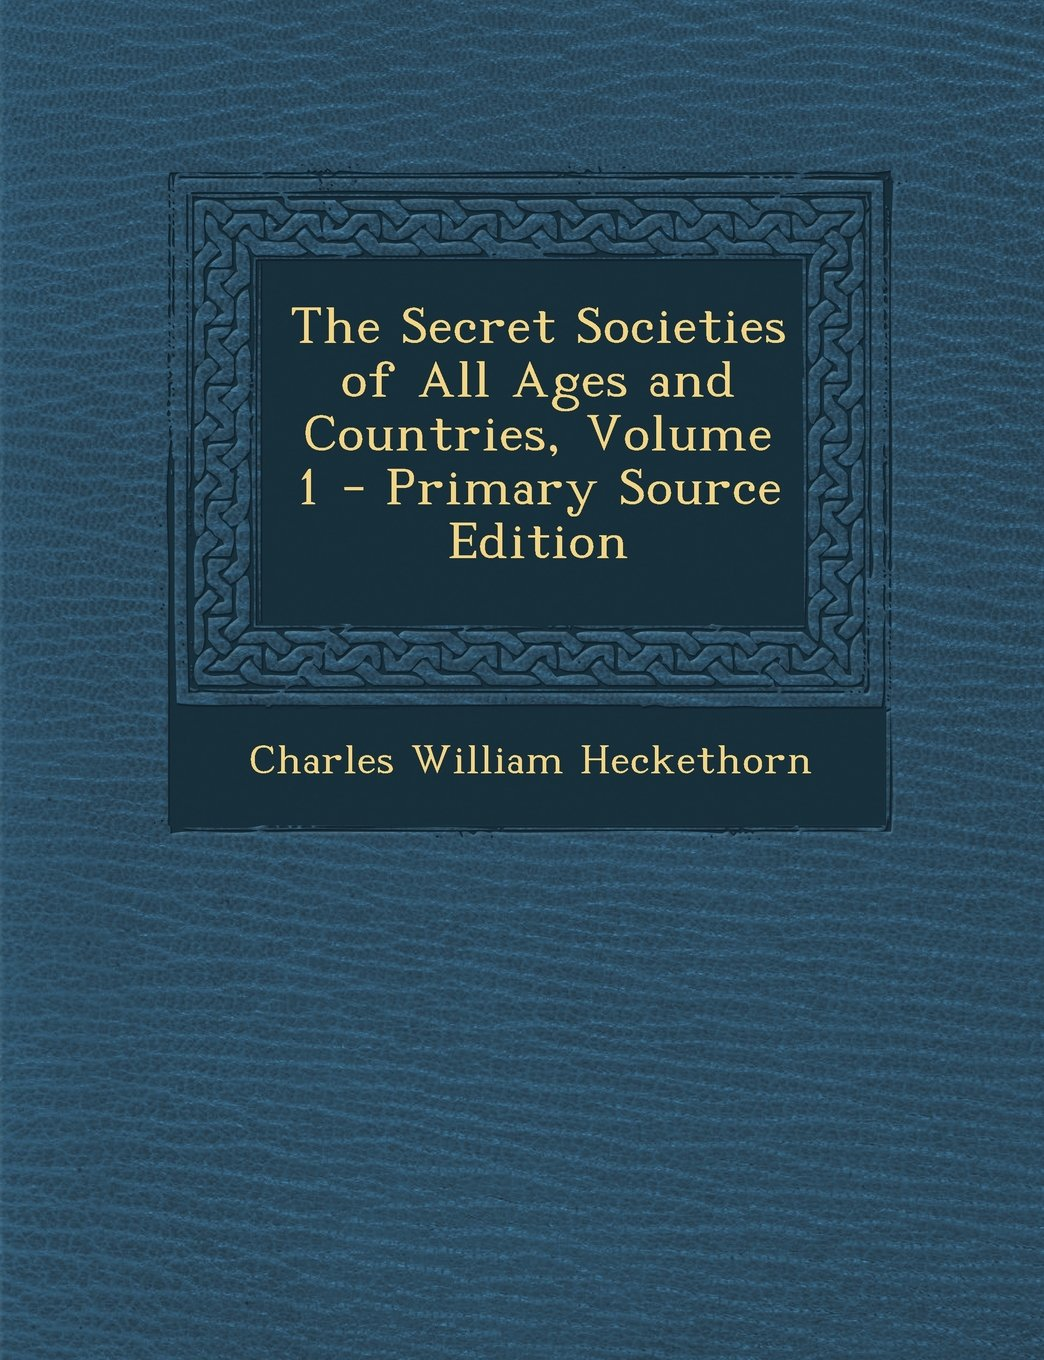 The Secret Societies of All Ages and Countries, Volume 1 - Primary Source Edition PDF